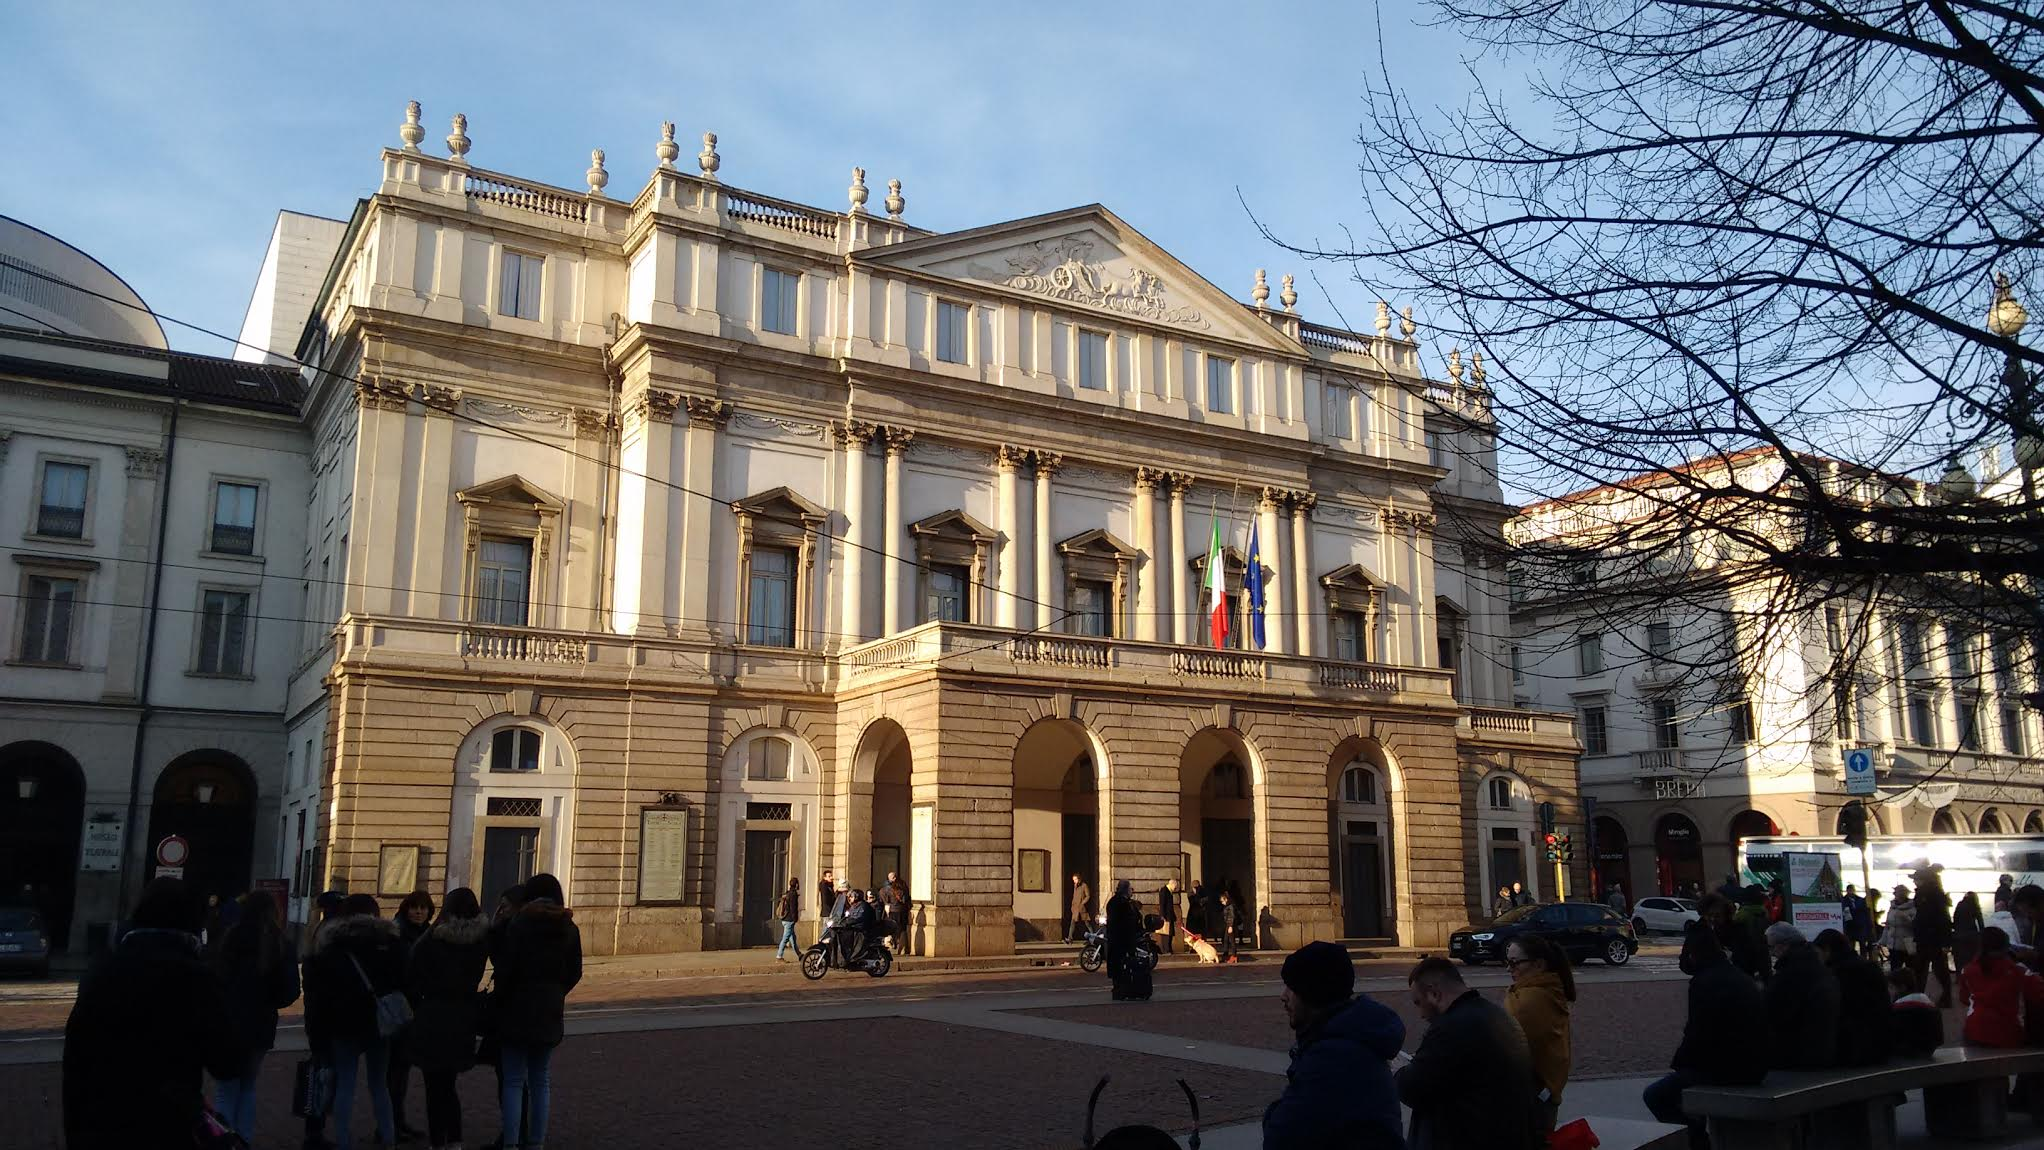 La-Scala-Opera-House-and-Theater-in-Milan-Italy.jpg